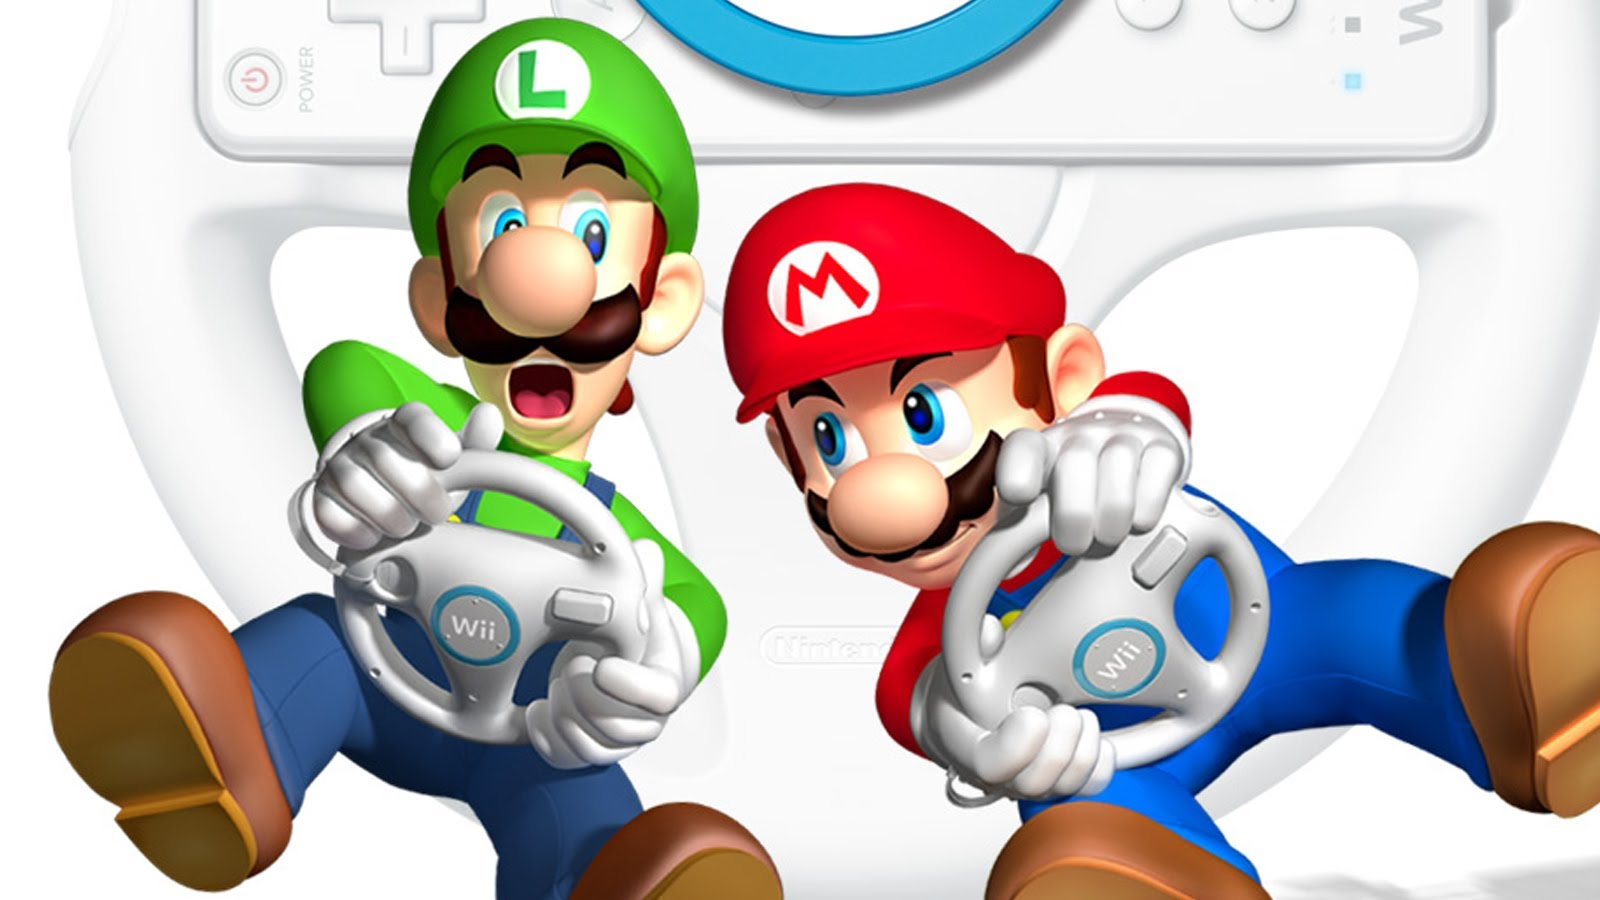 Mario Kart Wii On Nvidia Shield Has Online Multiplayer